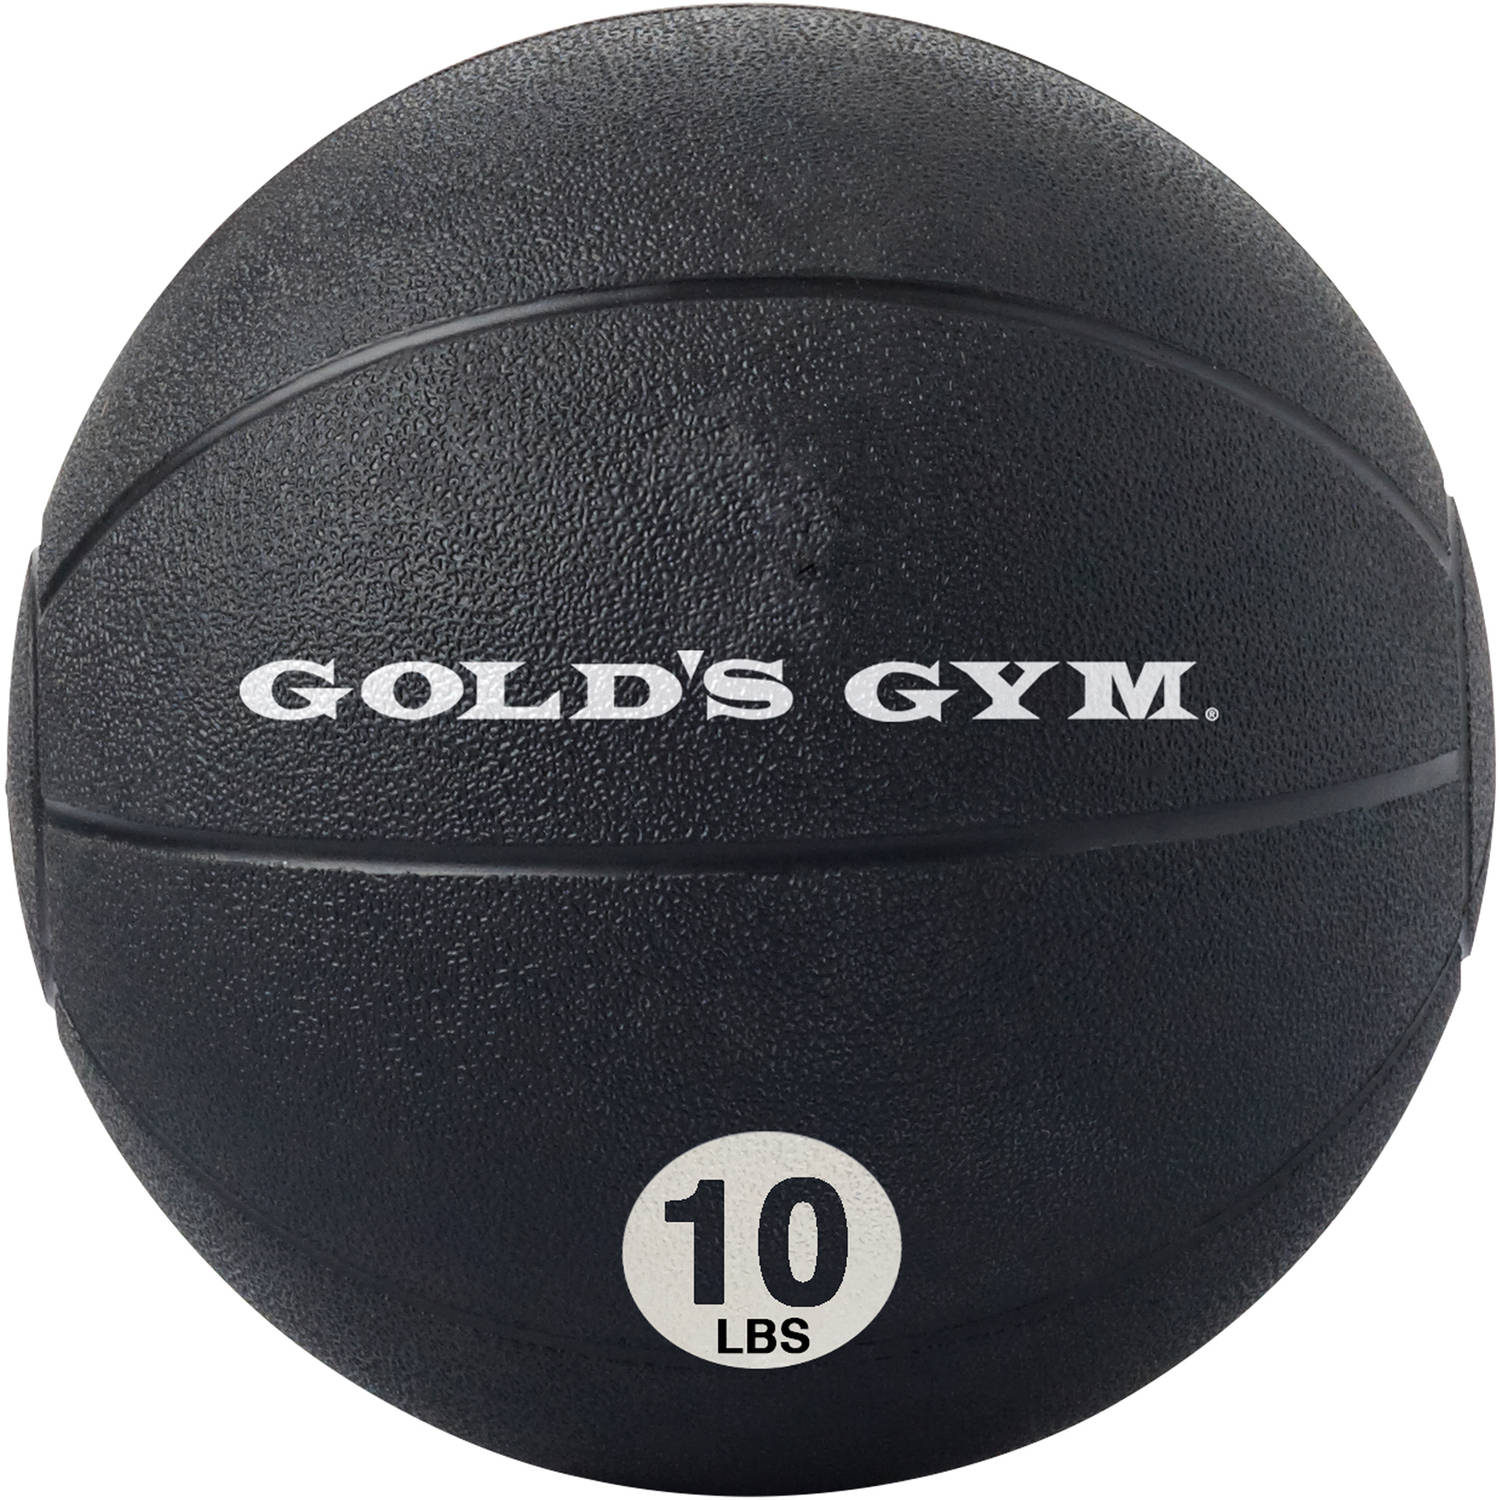 Gold's Gym 10 lb Medicine Ball